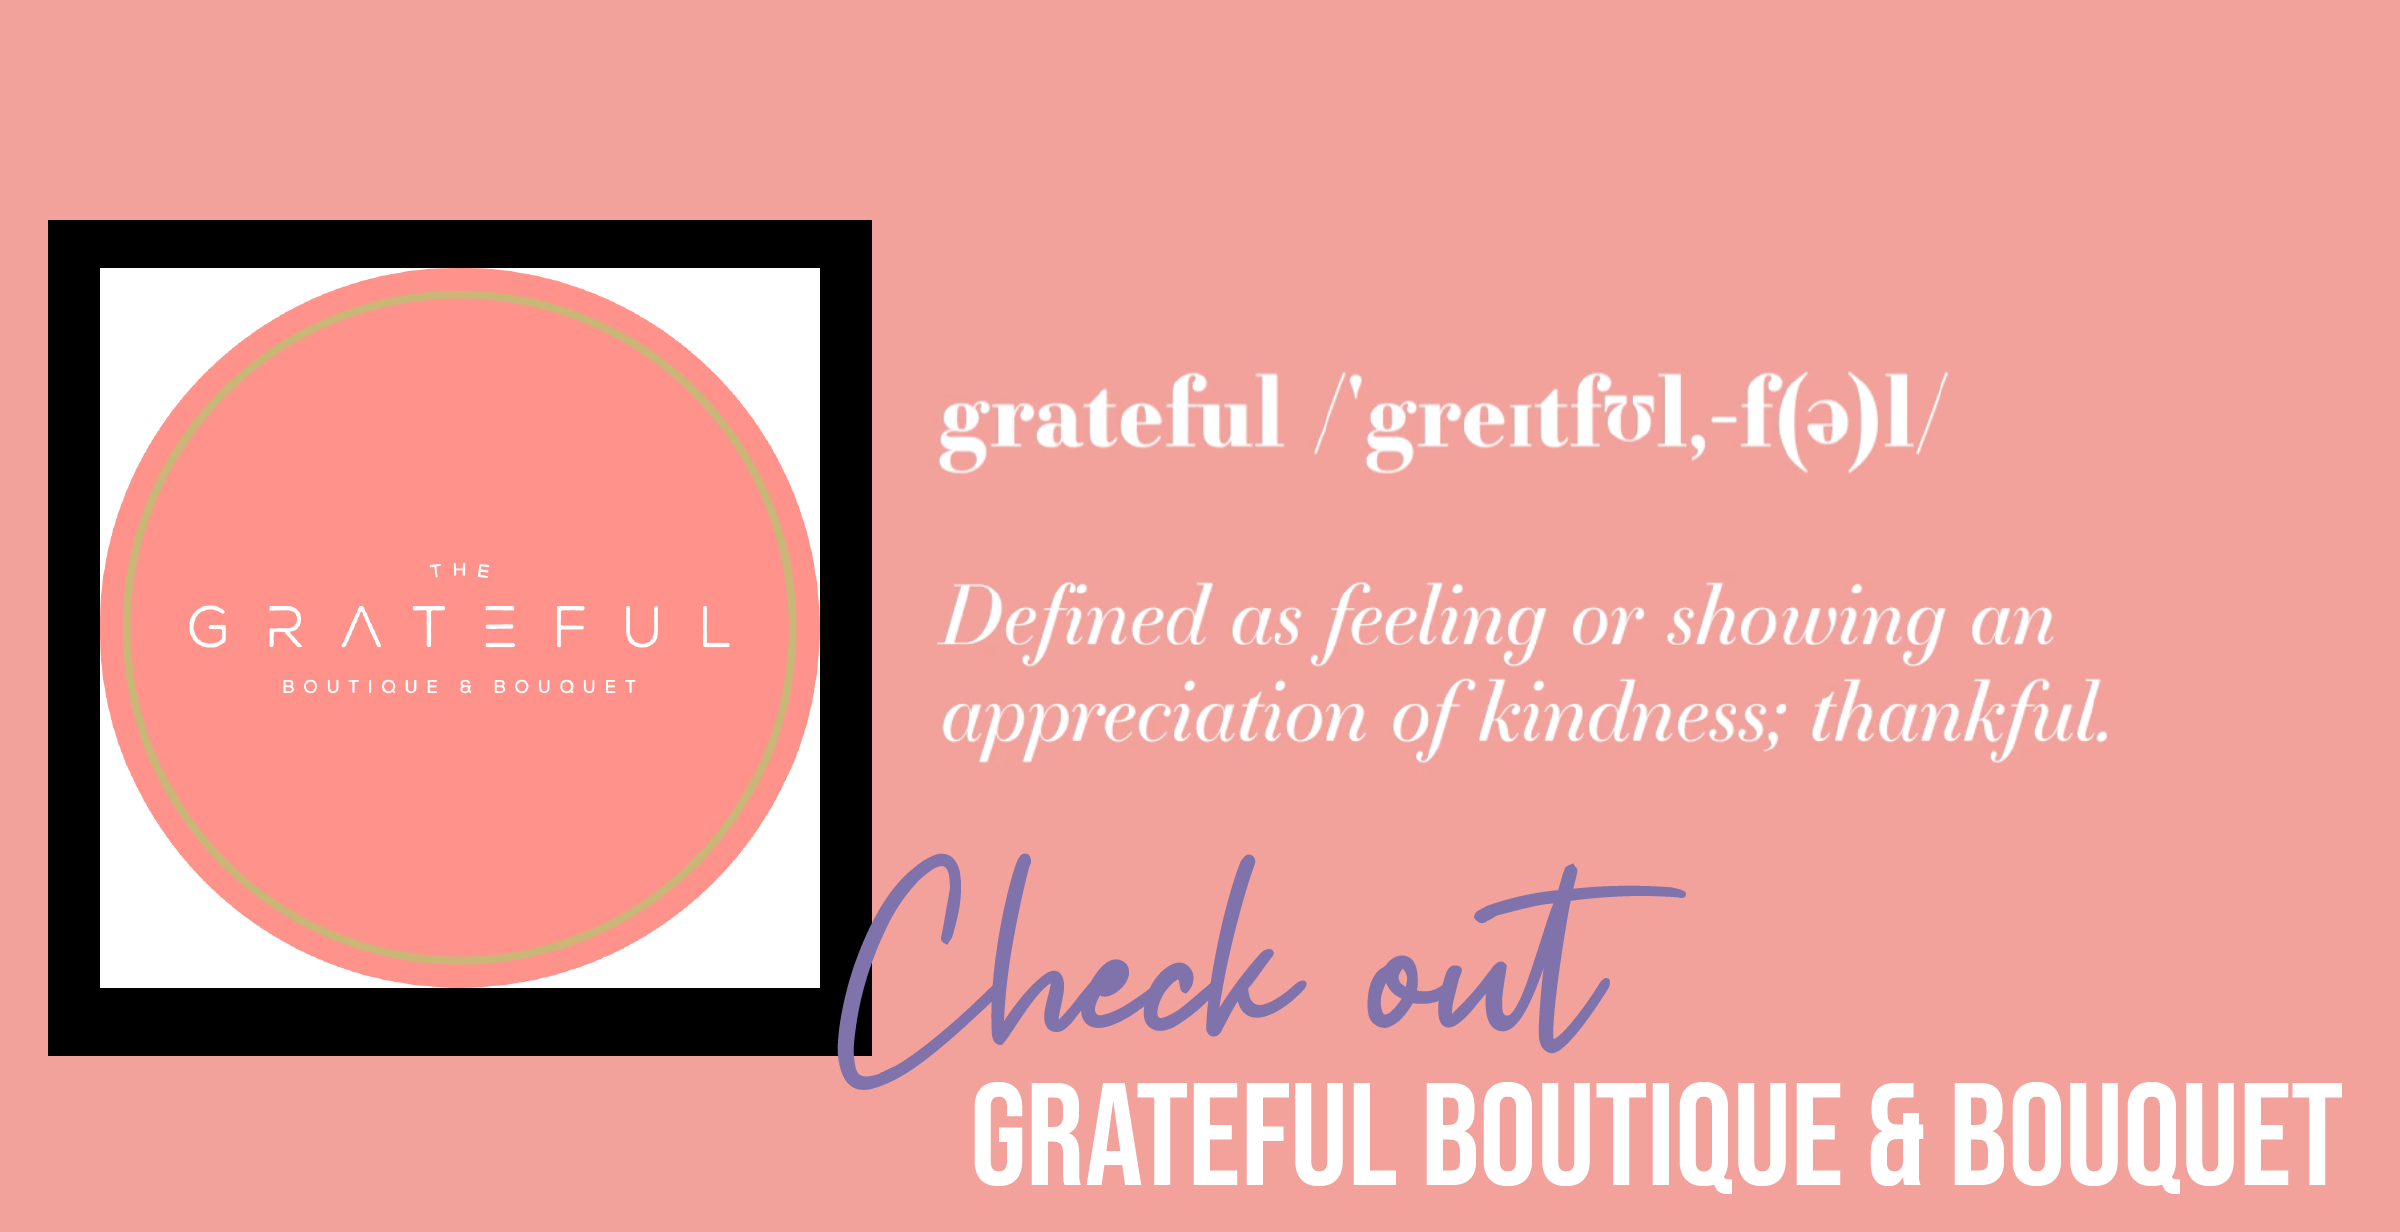 Check out GRATEFUL BOUTIQUE & BOUQUET